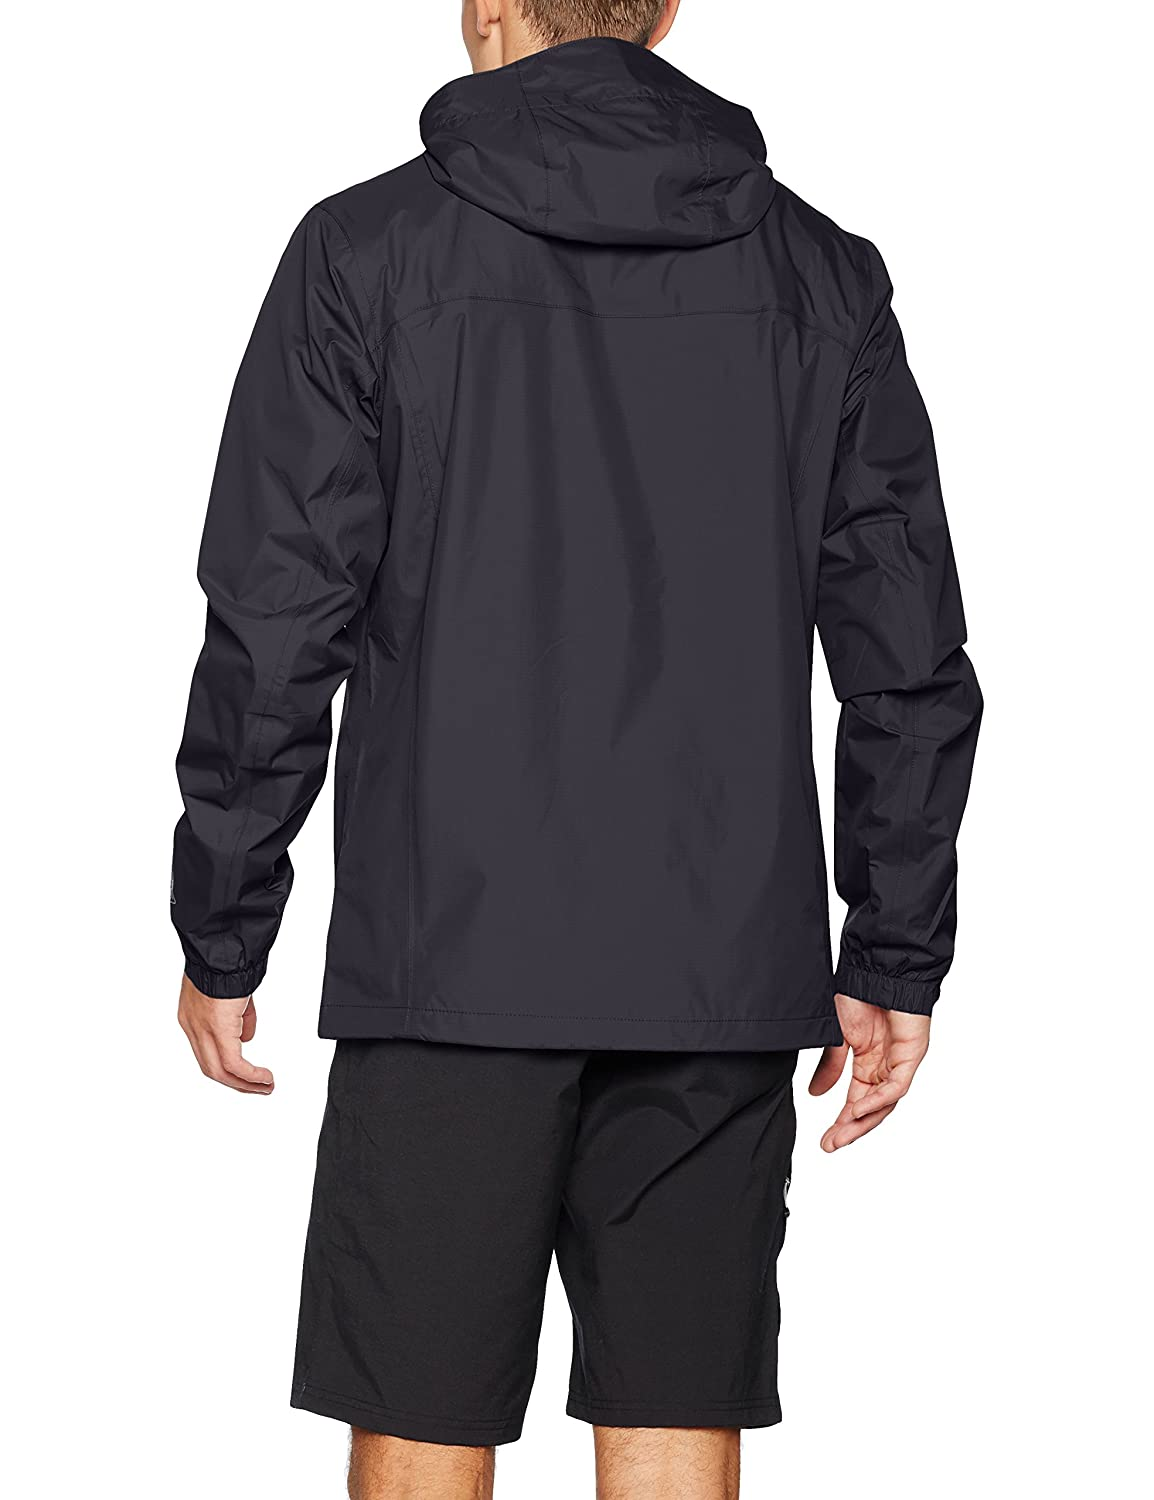 Amazon.com : Columbia Mens Pouring Adventure II Jacket Black ...